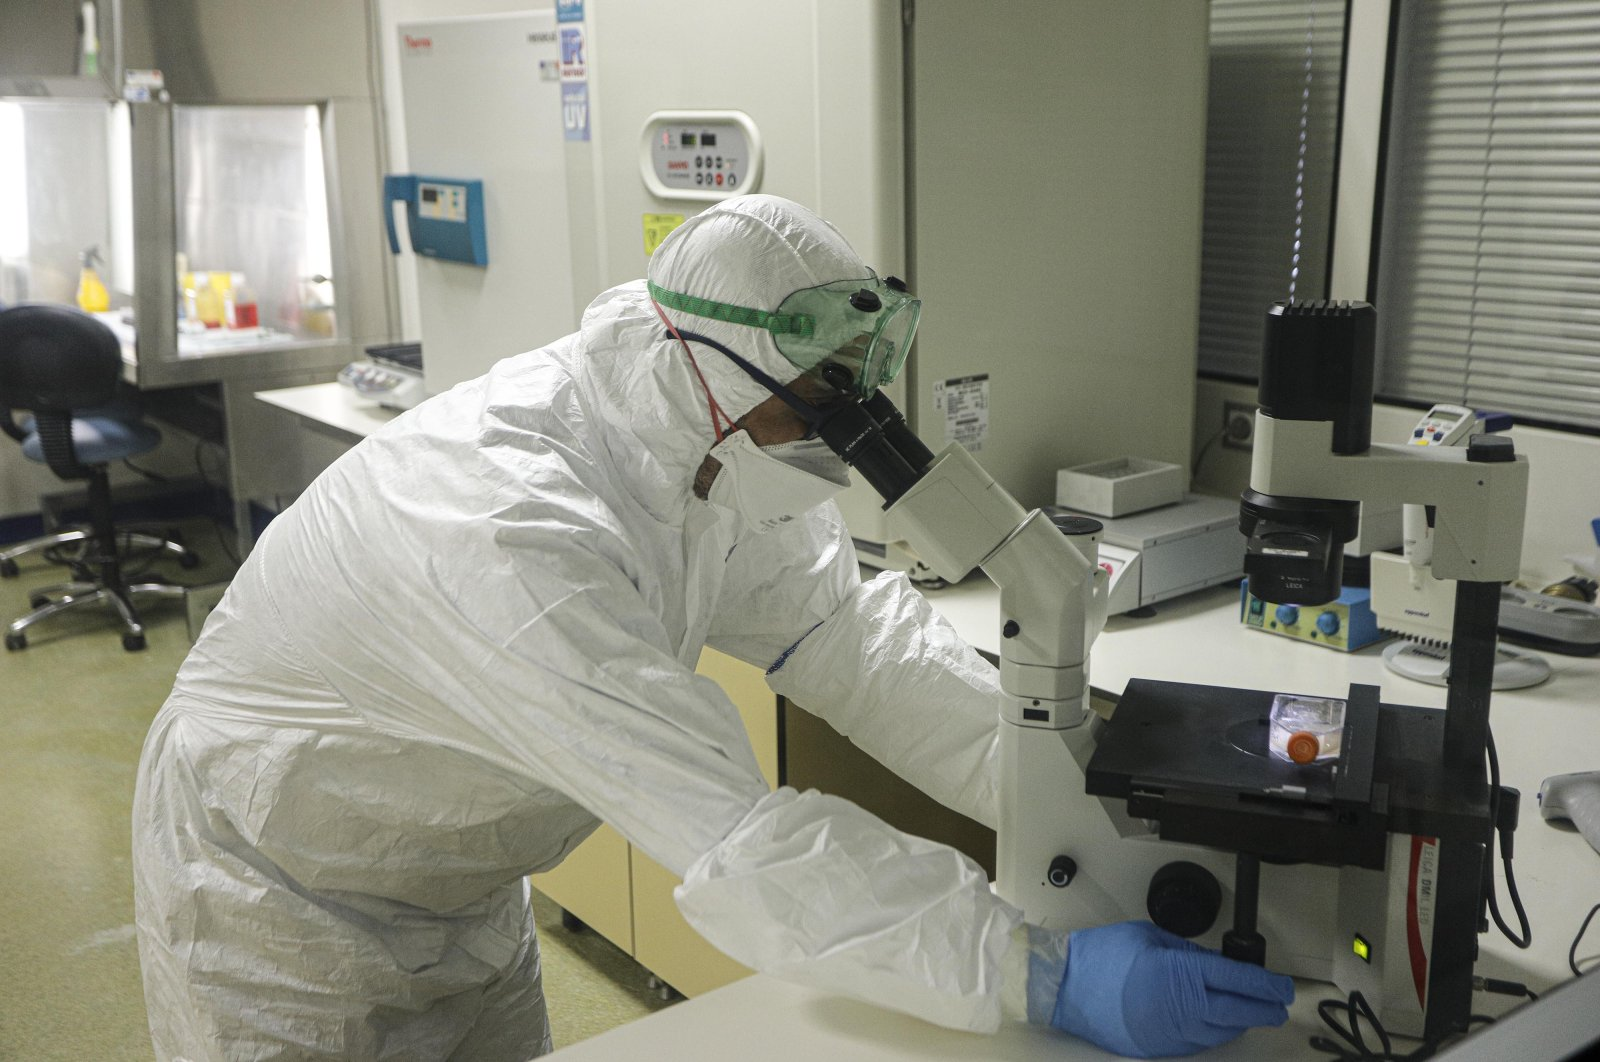 A researcher works at the Health Ministry's Public Health Laboratory where the virus was successfully isolated, Ankara, Turkey, April 10, 2020. (DHA Photo)